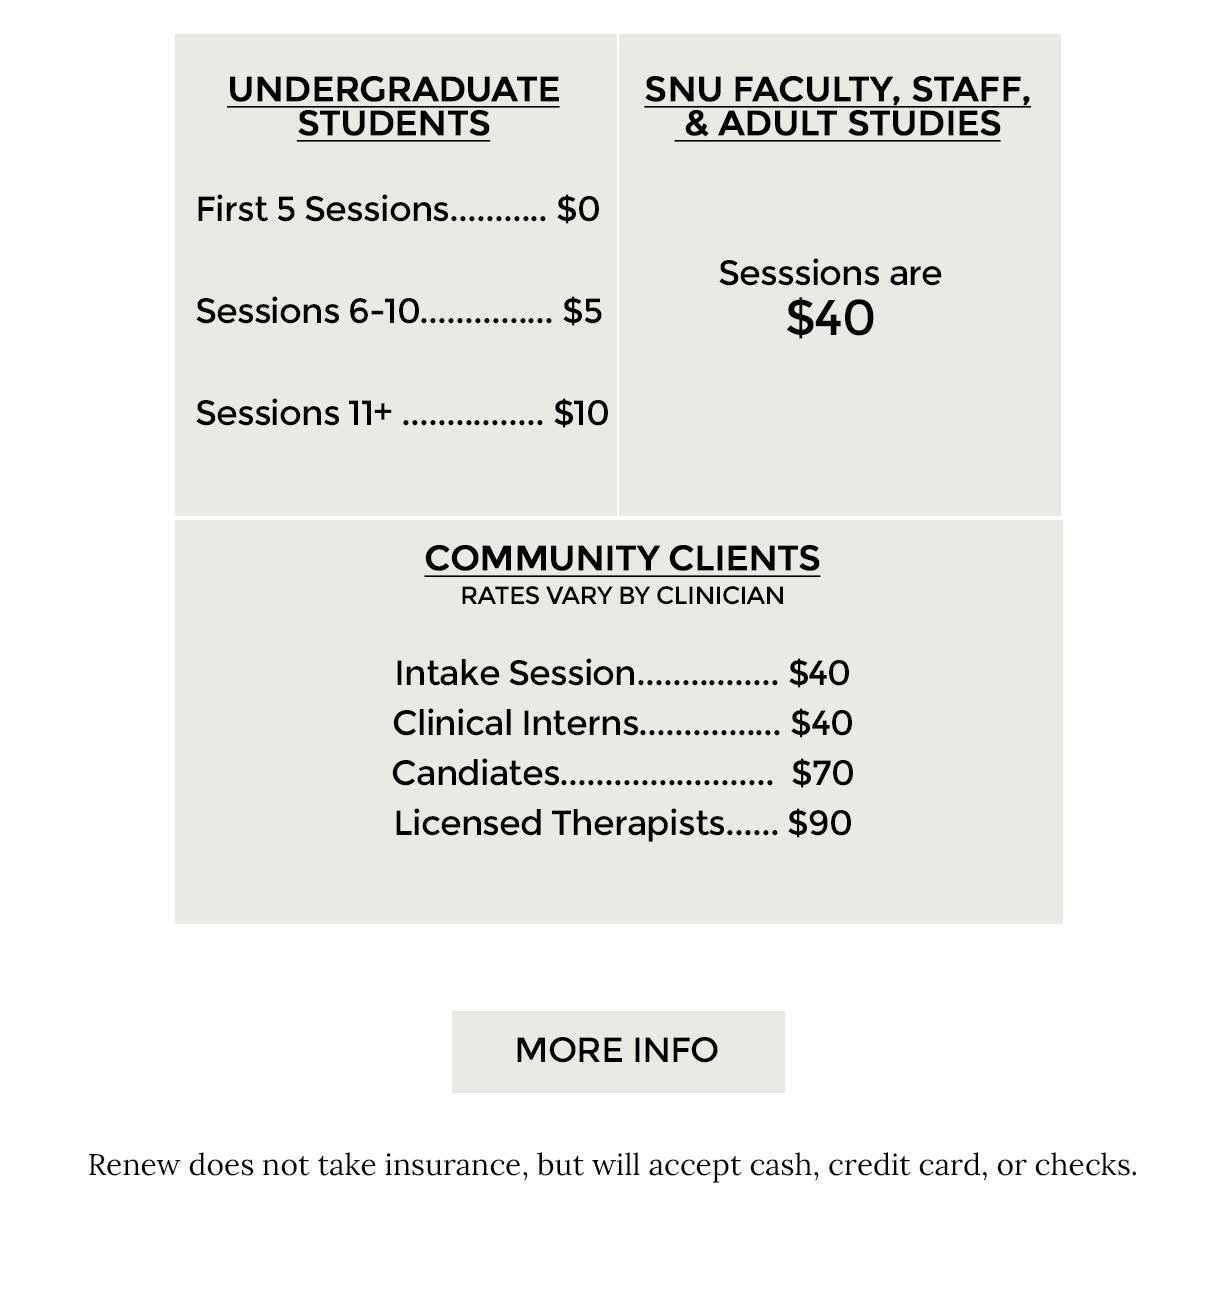 Undergraduate students: First 5 Sessions are free, Sessions 6-10 are $5, and after that sessions are $10 each. SNU, Faculty, Staff, and Adult Studies sessions are $40. Community Client rates vary by clinician. Intake sessions are $40. Clinical intern sessions are $40. Candidates are $70. Licensed Therapists are $90. More info. Renew does not take insurance, but will accept cash, credit card, or checks.